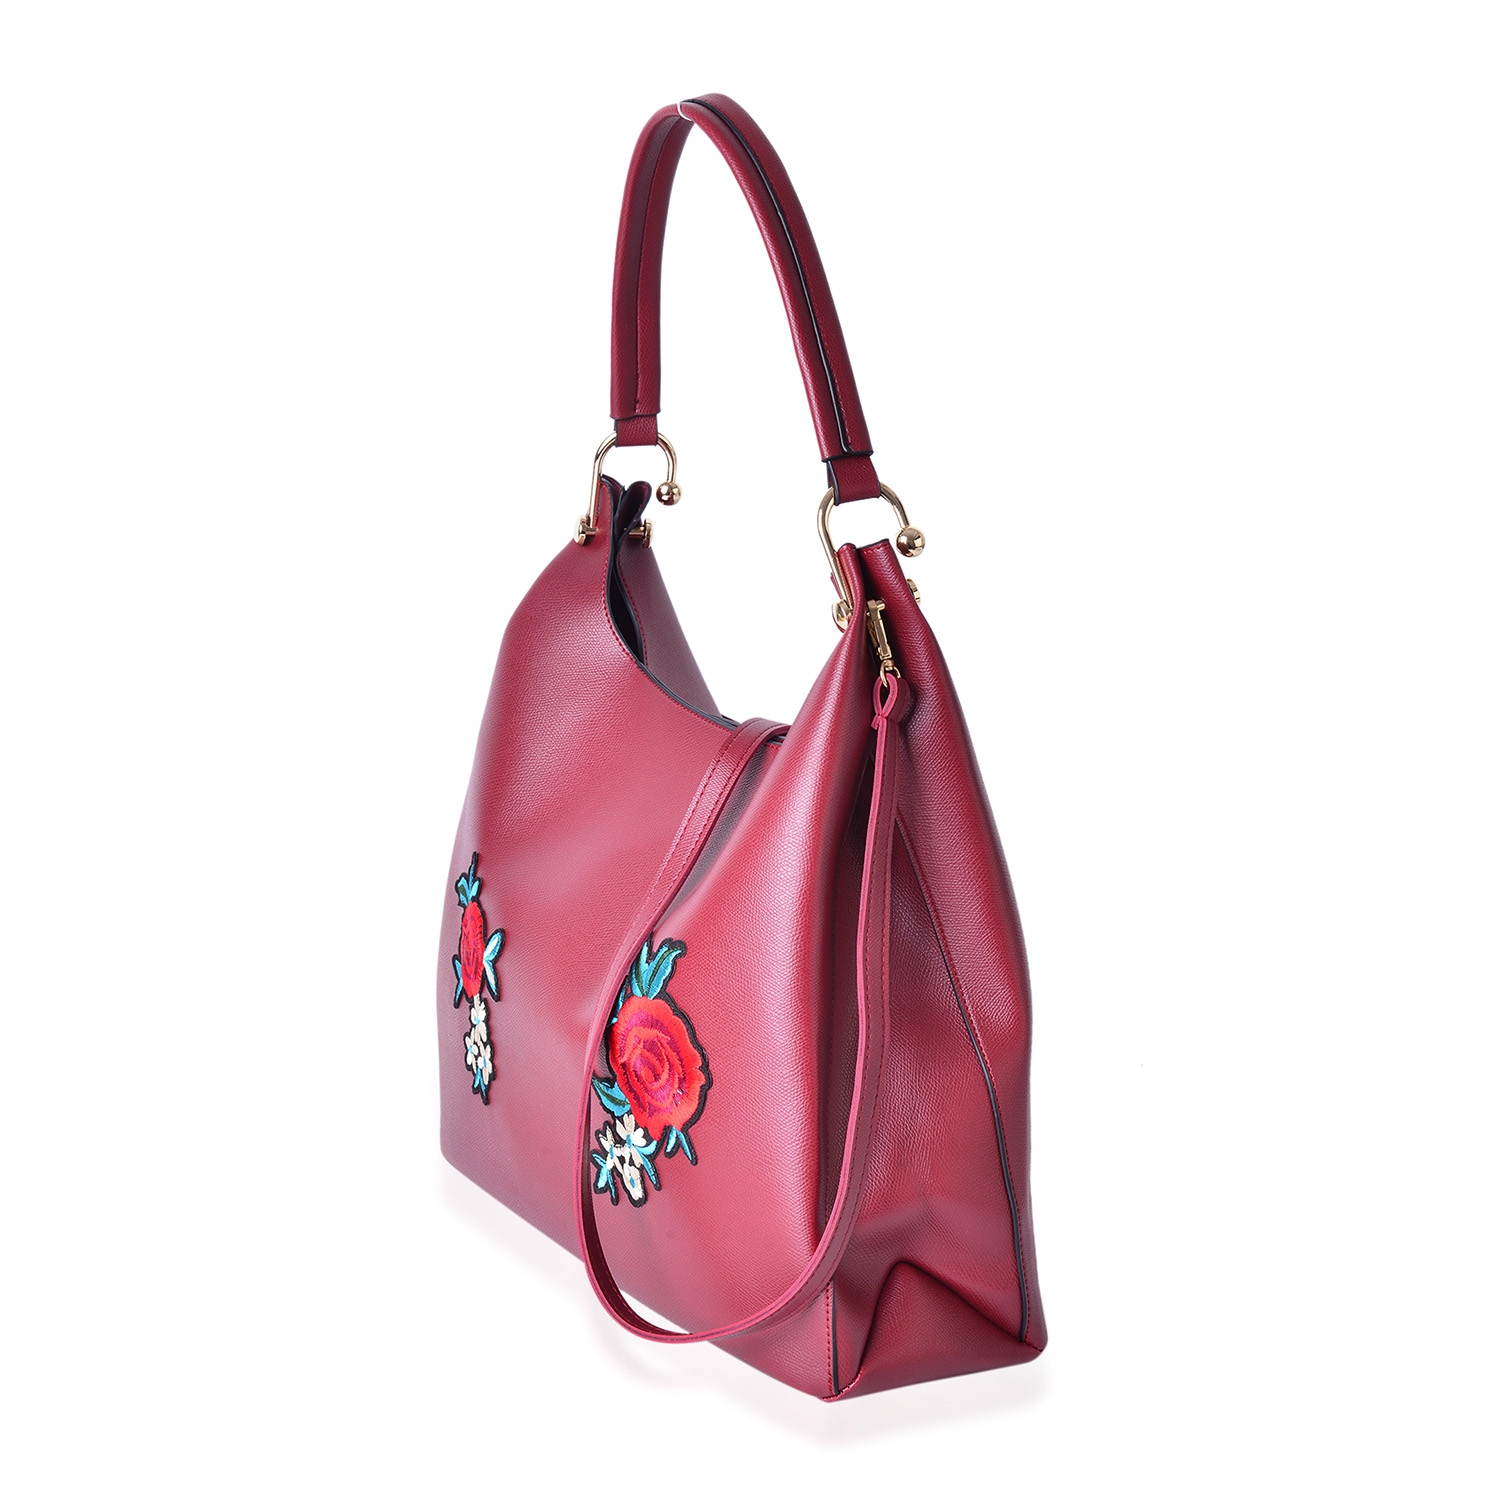 b36d631caa0 ... Maroon Faux Leather Eye-Catching Floral Embroidery Tote Bag (15x5x12  in) with Matching ...